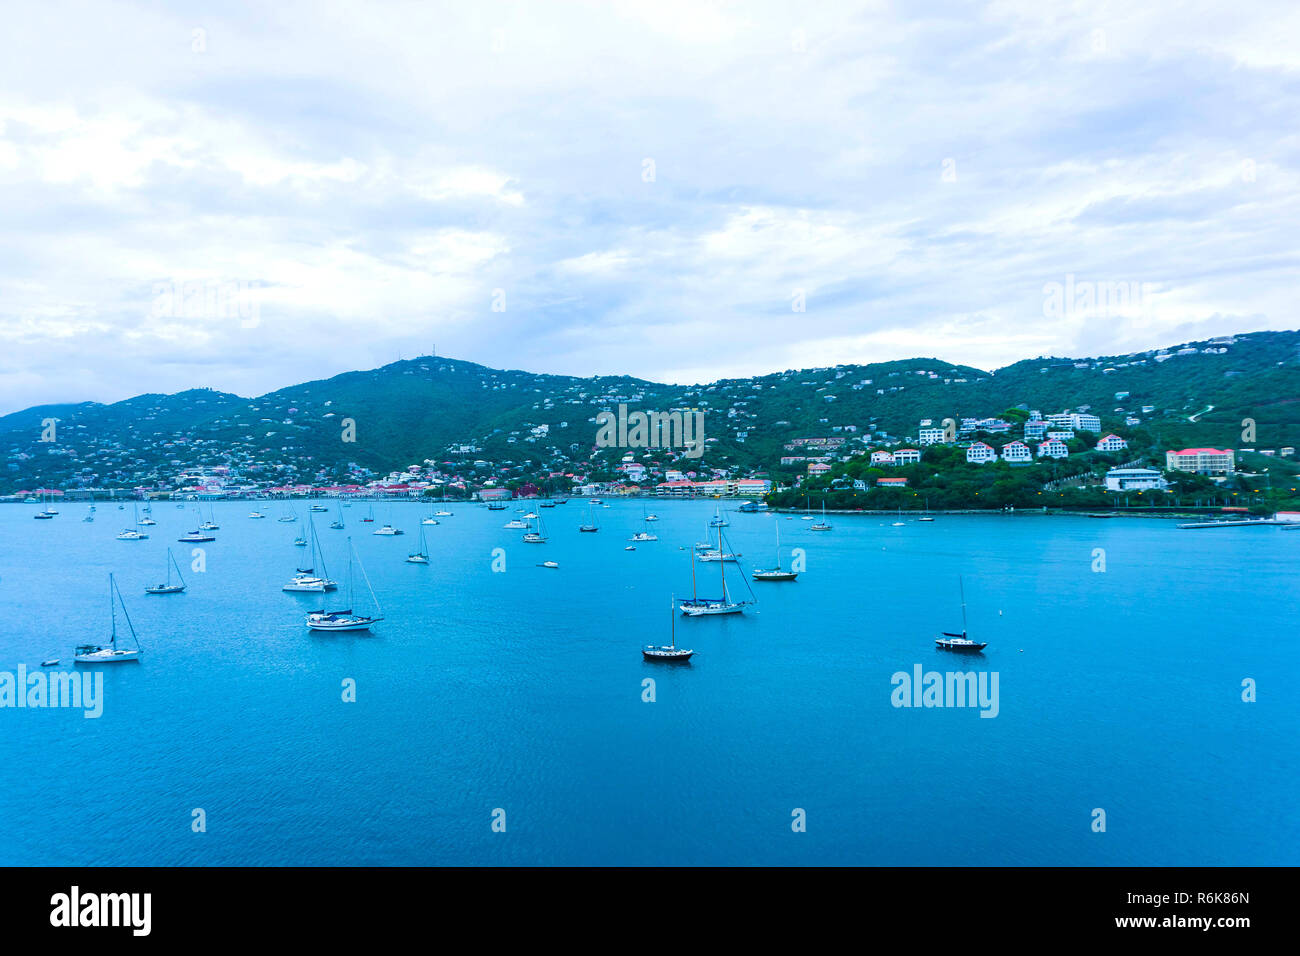 Aerial view of the island of St Thomas, USVI. Charlotte Amalie Stock Photo